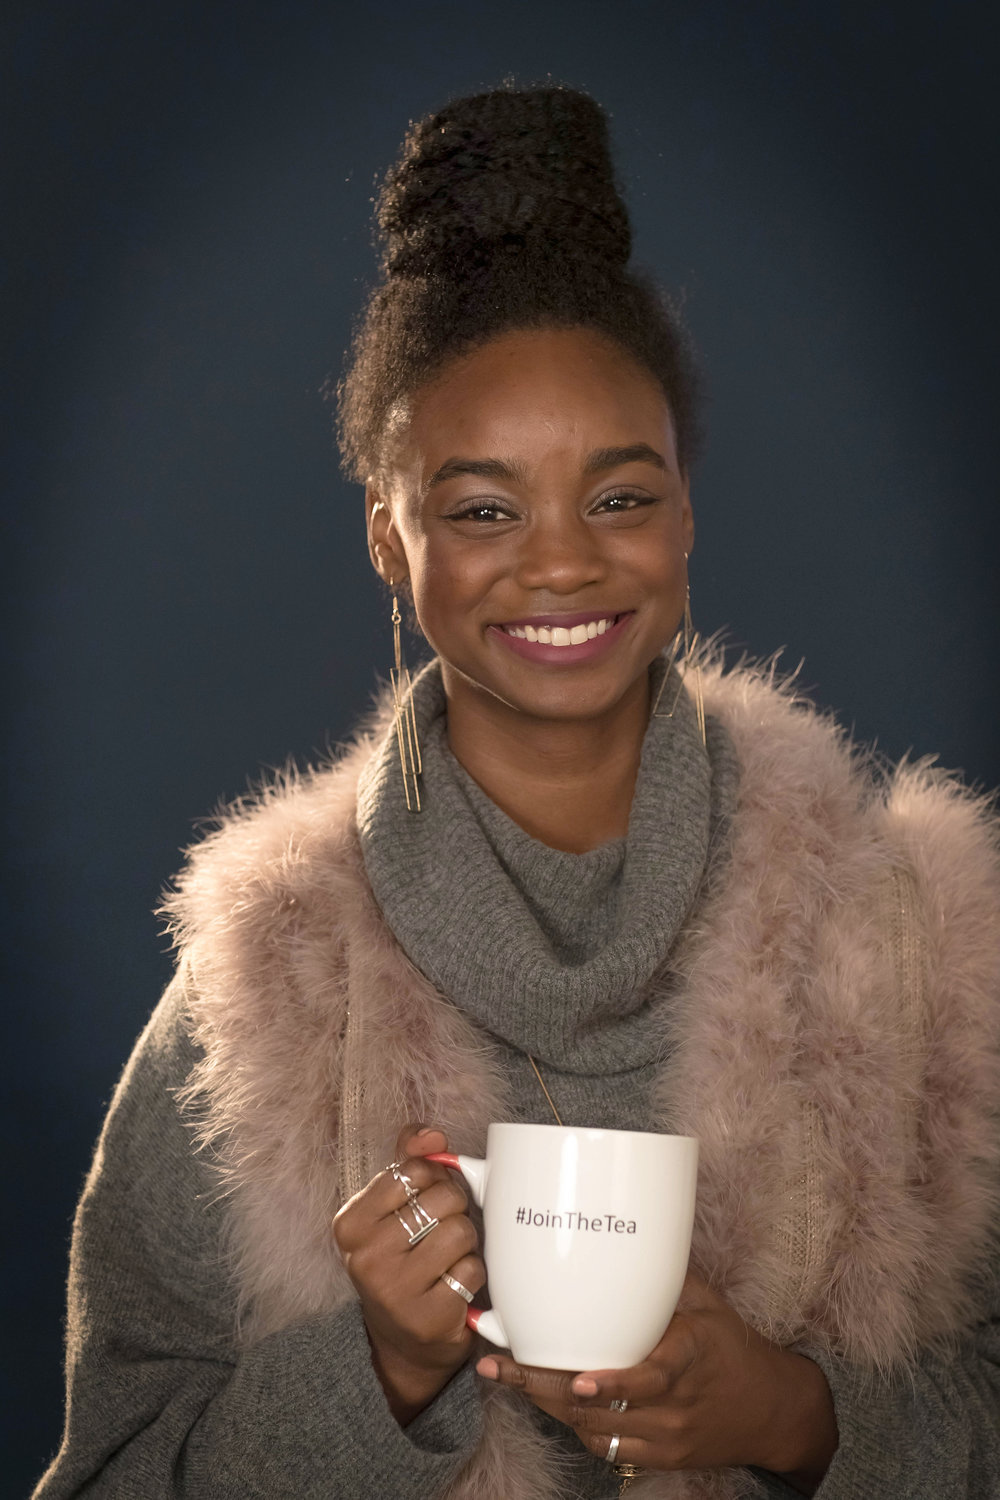 """Janelle Clayton    JANELLE IS AN ACTRESS, MODEL, BOARD MEMBER OF A NON-PROFIT, UNIVERSITY OF VIRGINIA ALUMNI ASSOCIATION, AND ACCOUNT MANAGER IN ADVERTISING. SHE WAS A VARSITY TRACK AND FIELD HIGH JUMPER AT HER ALMA MATER, THE UNIVERSITY OF VIRGINIA. WHEN SHE ISN'T AT THE OFFICE, JANELLE IS AUDITIONING FOR HER NEXT ROLE AND BLOGGING.     """"The Tea' is an essential and safe place to discuss the issues and hot topics that heavily impact our communities from relationships to family history to health and beyond. Our show has encouraged me to share my own beliefs and listen to others' views, as well. The Tea is a place that belongs to all of us. I'm proud and in awe of the stories and gems we all share across the globe.""""      facebook.com/JanelleAClayton       instagram.com/janelleclayton"""